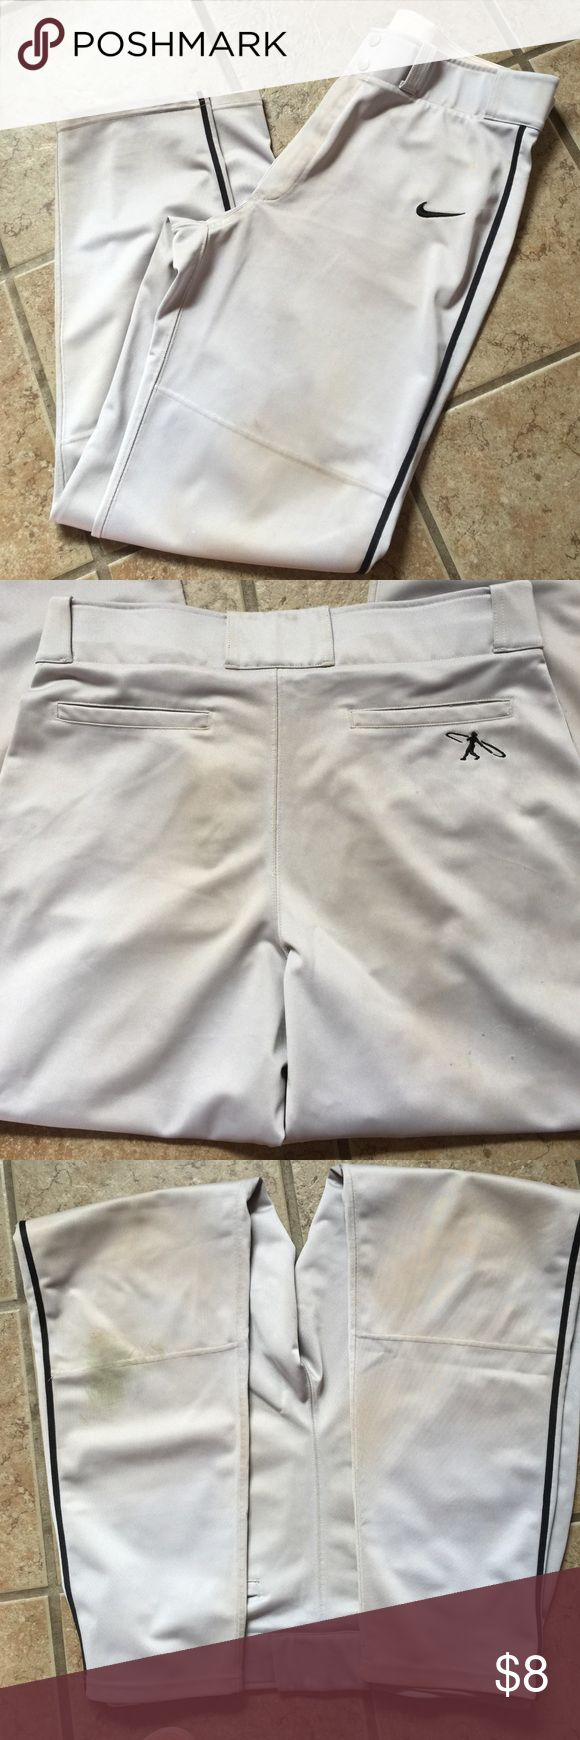 MENS NIKE BASEBALL PANTS Men's baseball/softball pants.  Signs of wear and stains from play.  Non-smoking home Nike Pants Sweatpants & Joggers